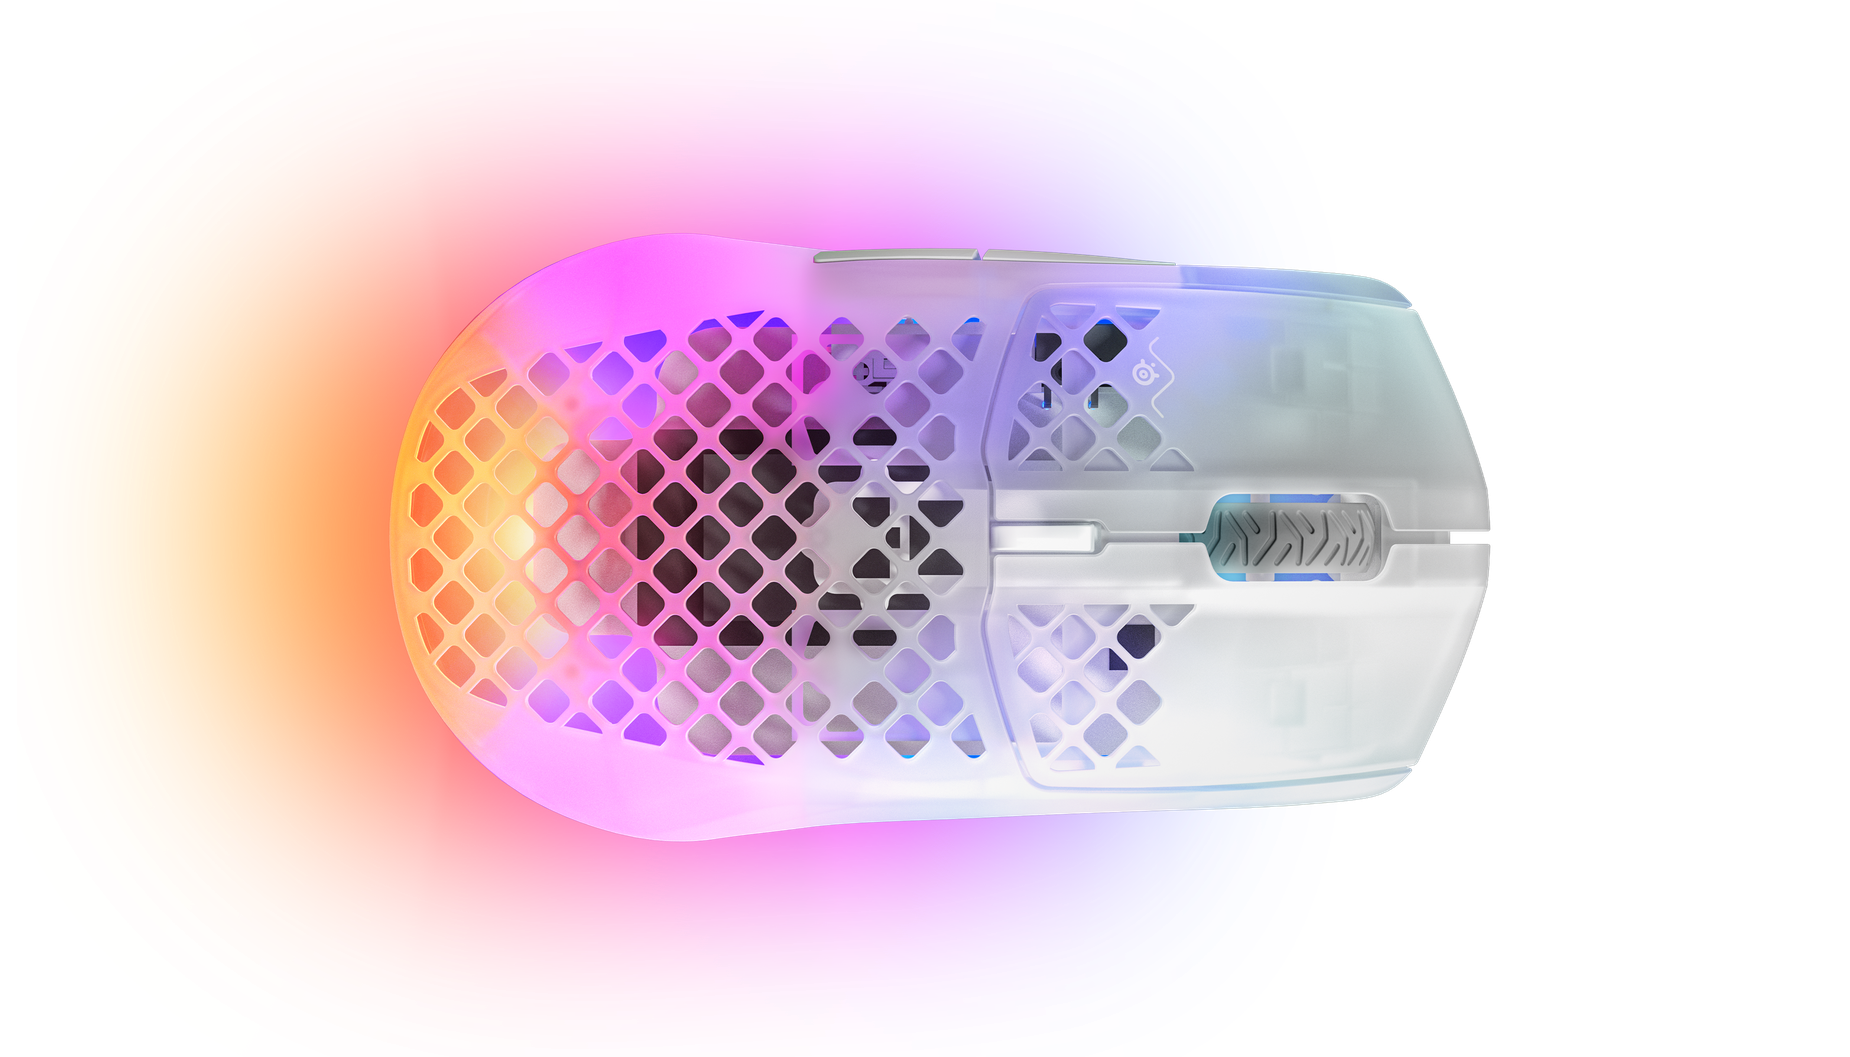 Top view of the Aerox 3 Wireless Mouse, ghost edition.